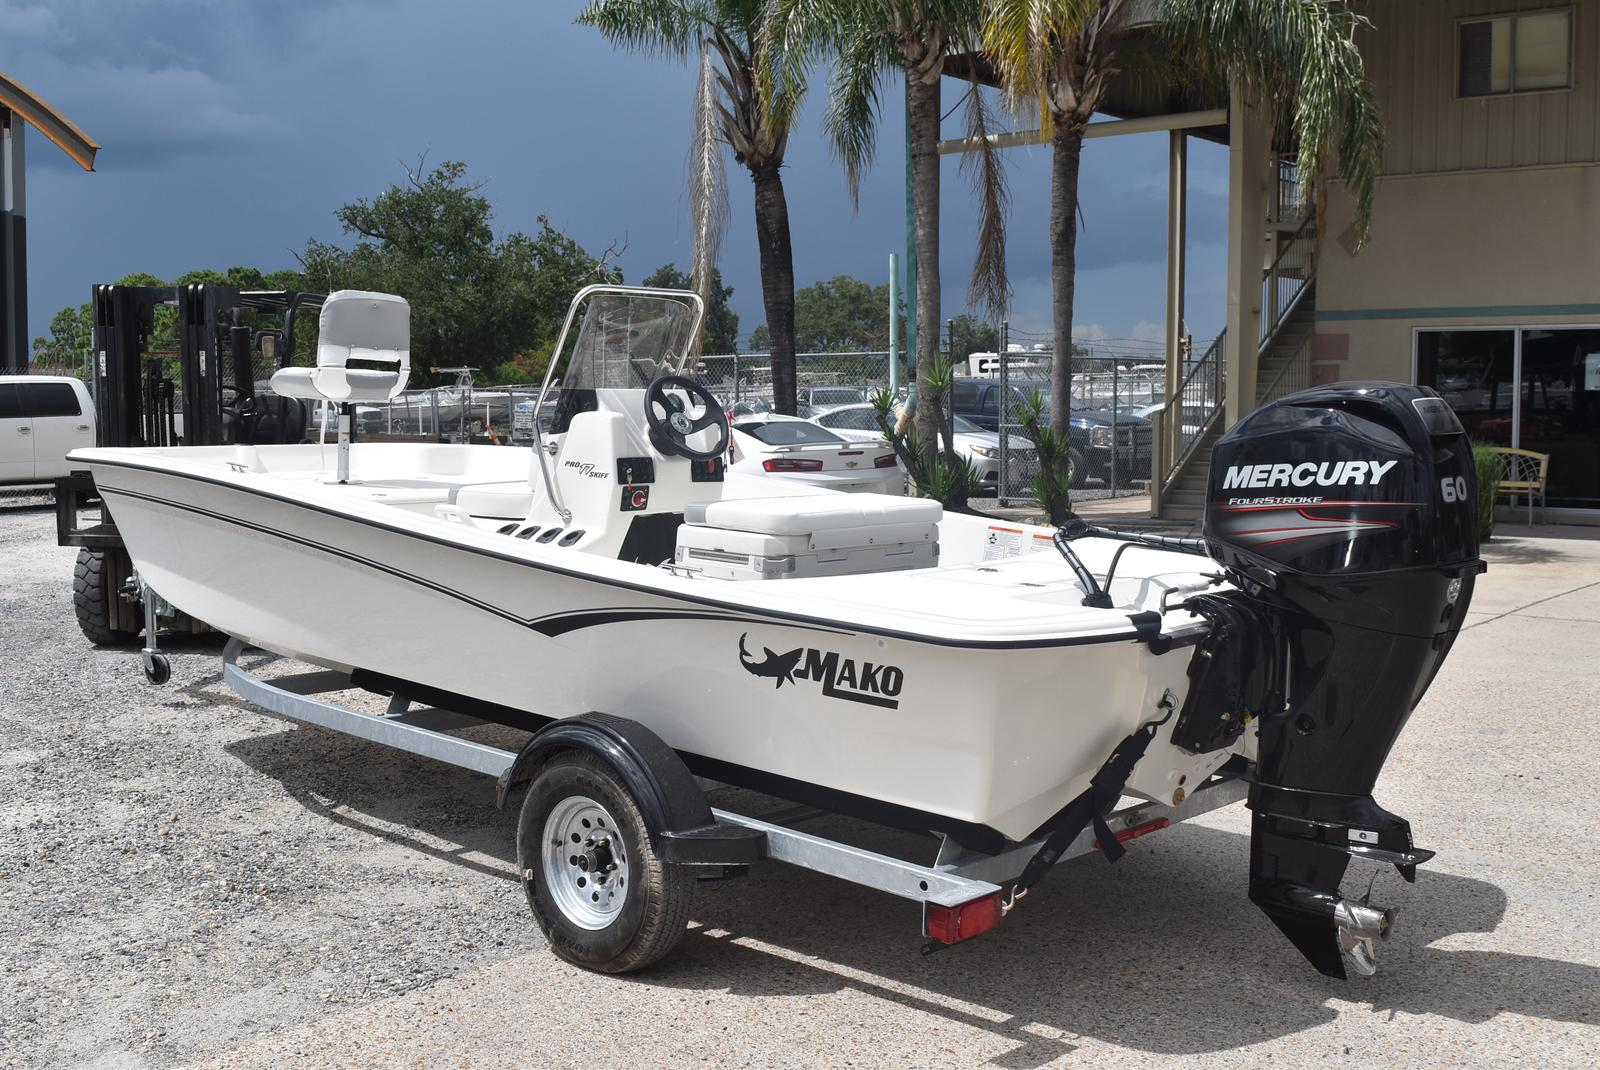 2020 Mako boat for sale, model of the boat is Pro Skiff 17, 75 ELPT & Image # 221 of 702